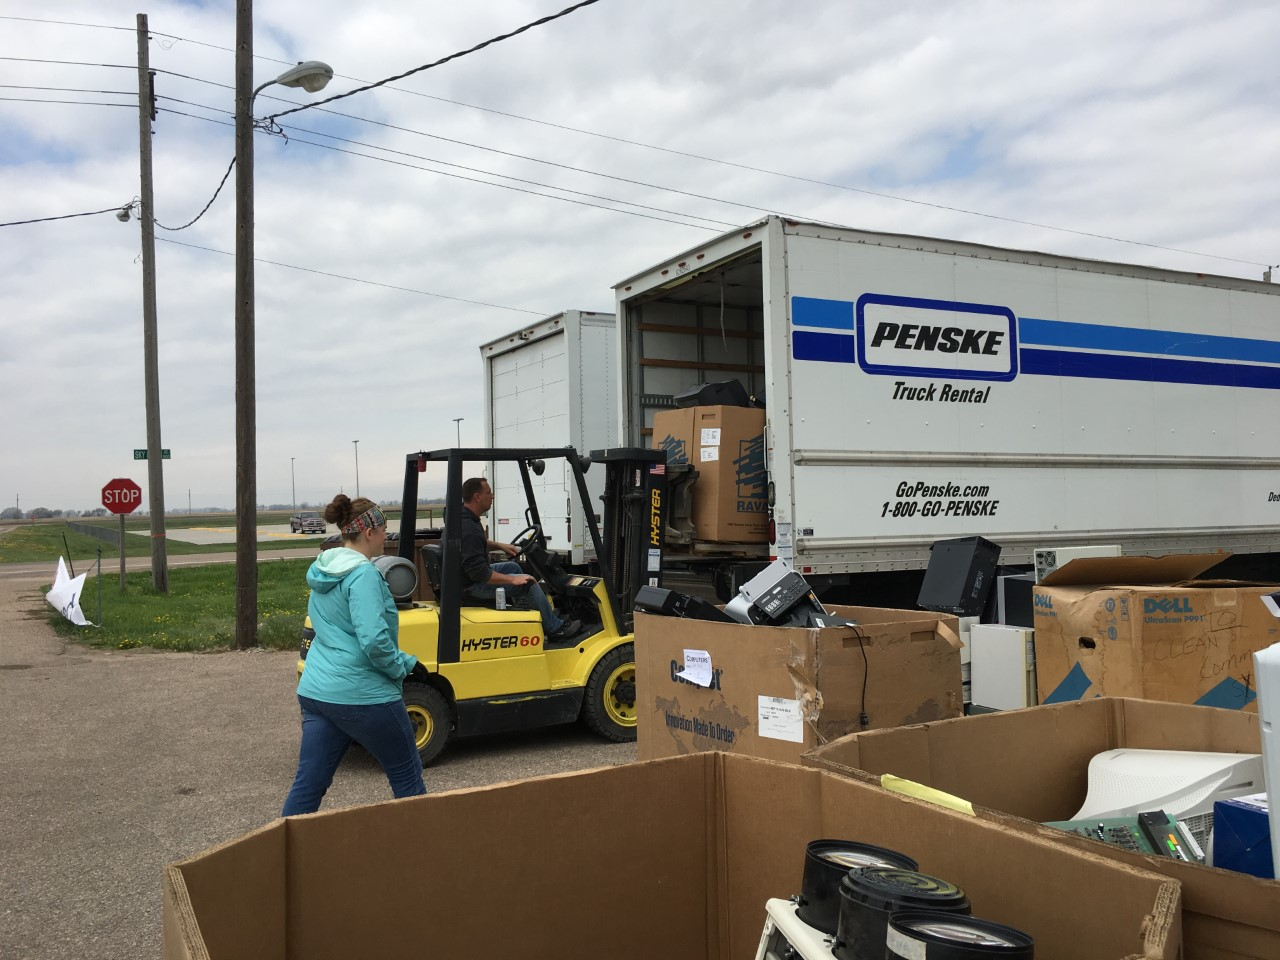 The electronics recycling day was put together by the Grand Island Area Clean Community System.